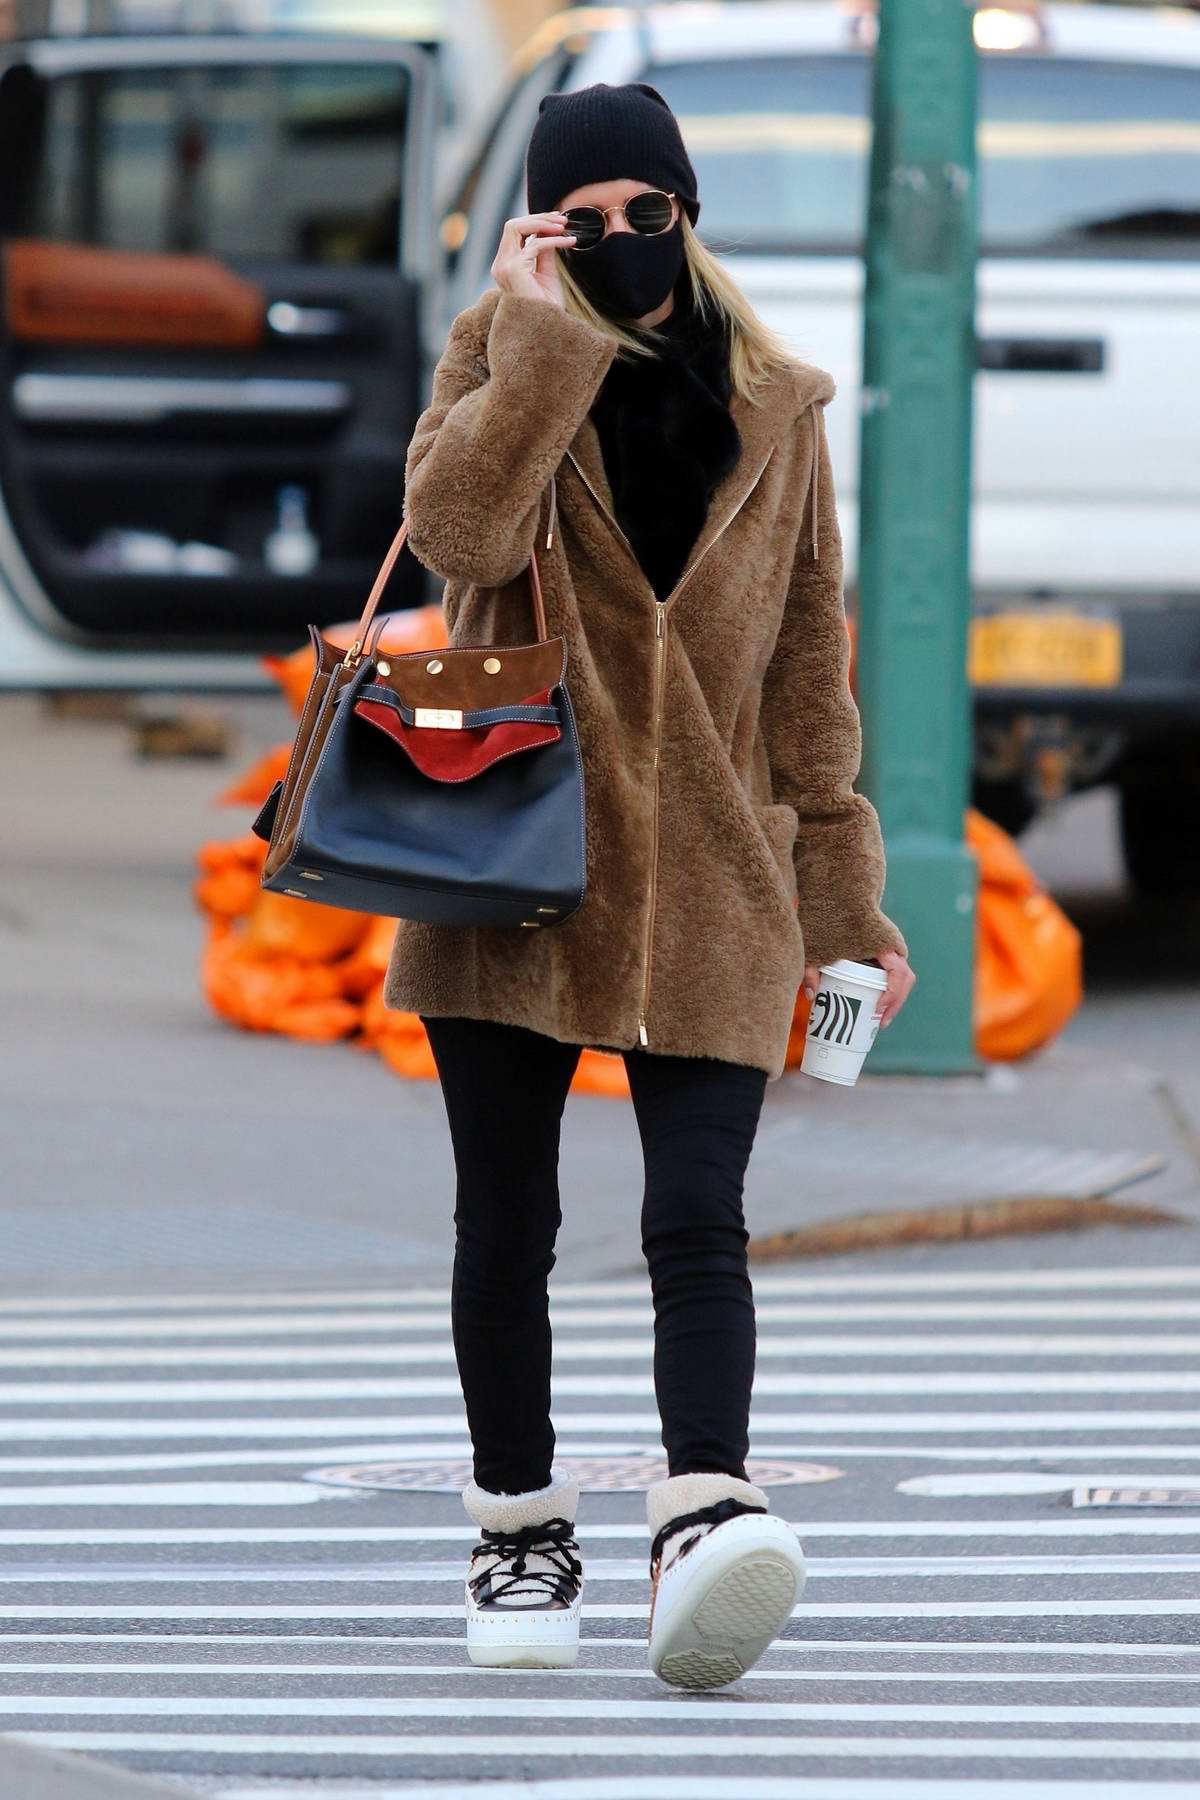 Nicky Hilton sports fashionable shoes while on a coffee run in Manhattan's Soho area, New York City